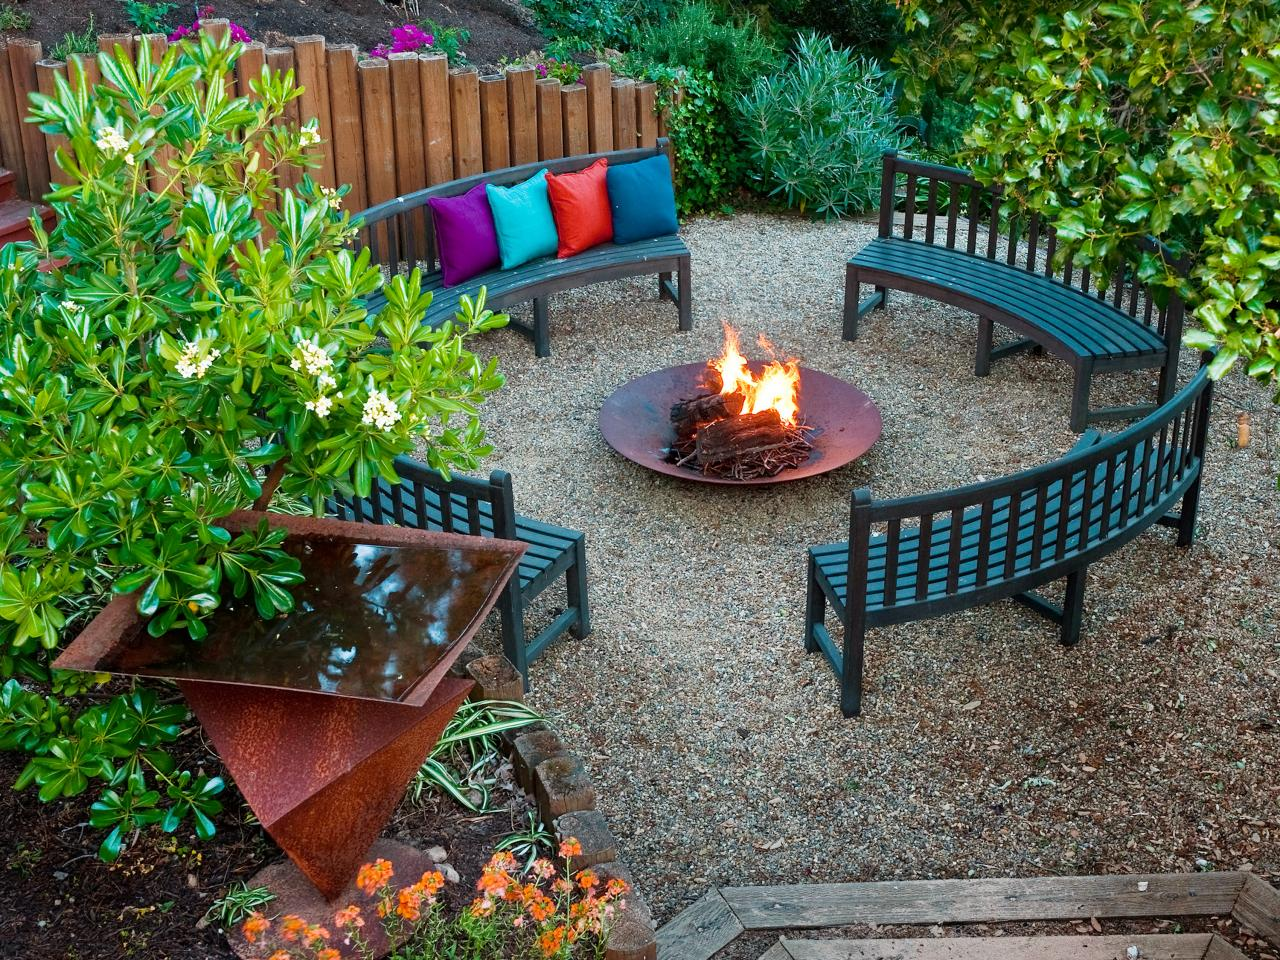 Amazing Design Of The Black Bench Added With Fire Pit As Well As The Backyard Fire Pit Ideas